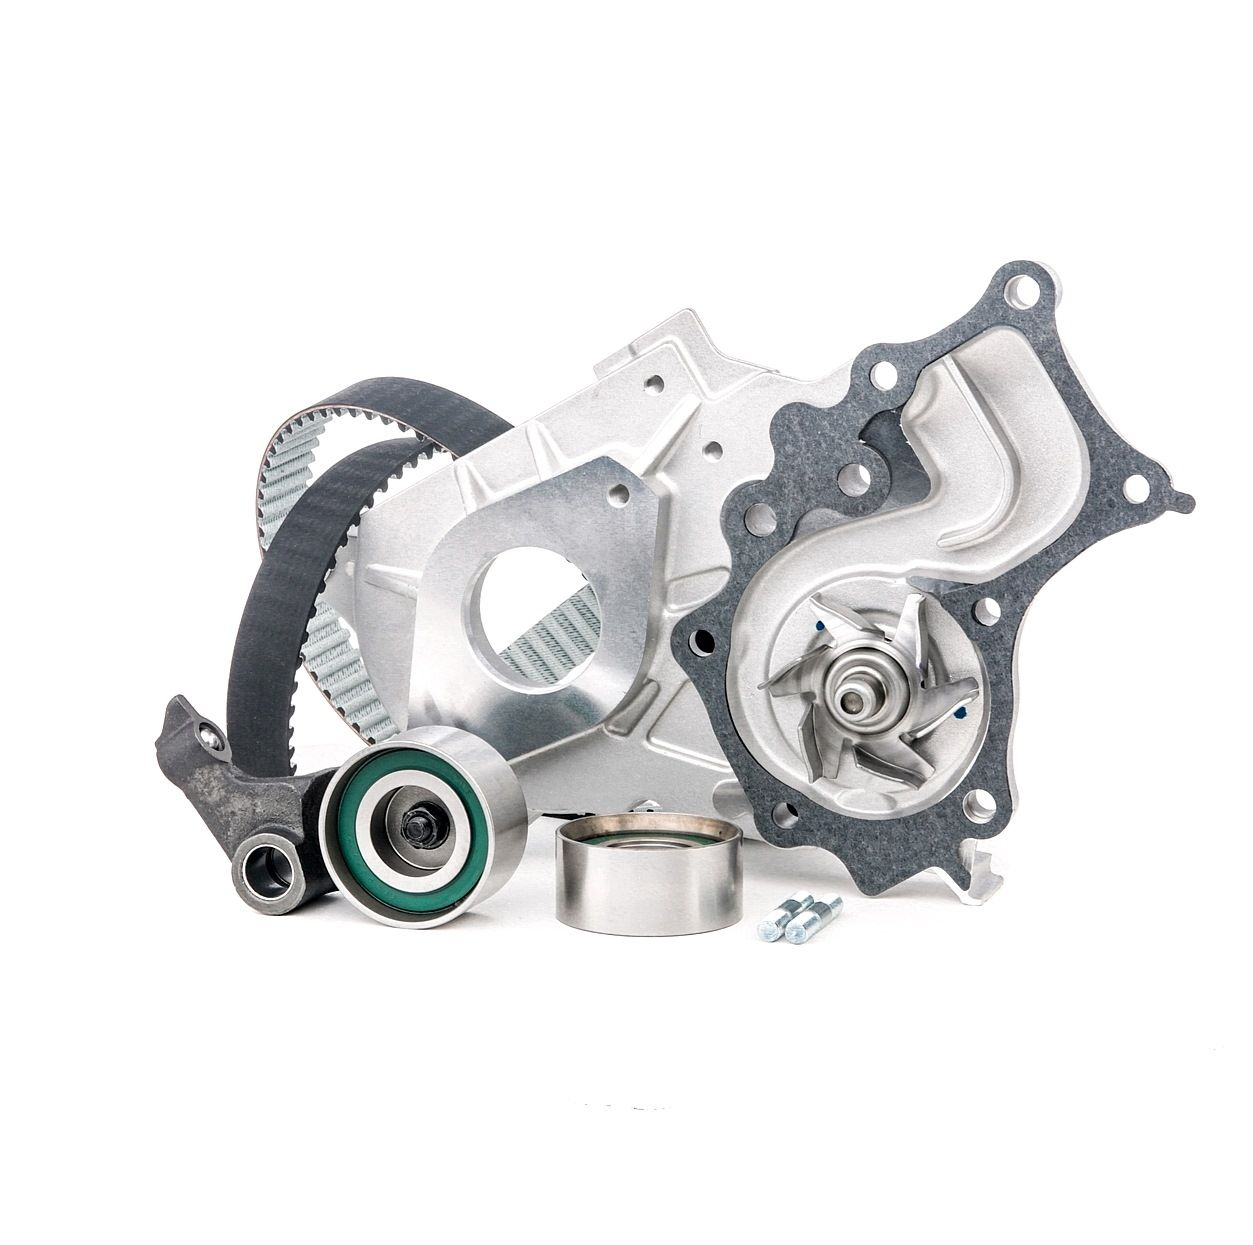 Timing belt kit and water pump SNR KDP469.140 rating